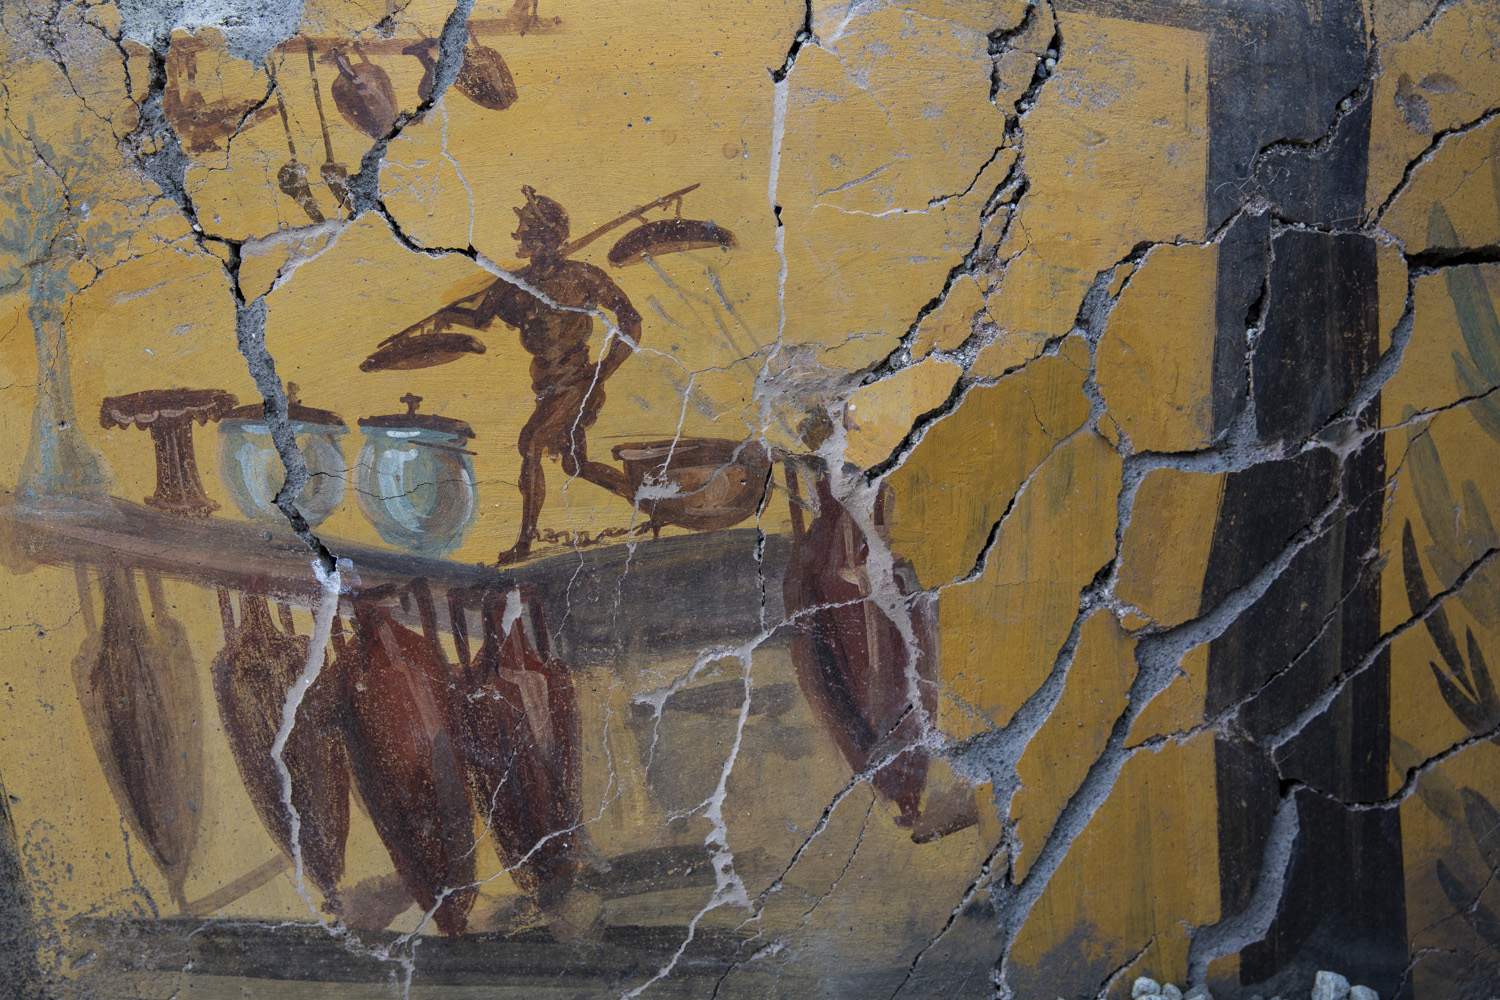 Fresco with amphorae from the counter of a thermopolium, first century CE, Pompeii, intersection of Silver Wedding Street and Alley of the